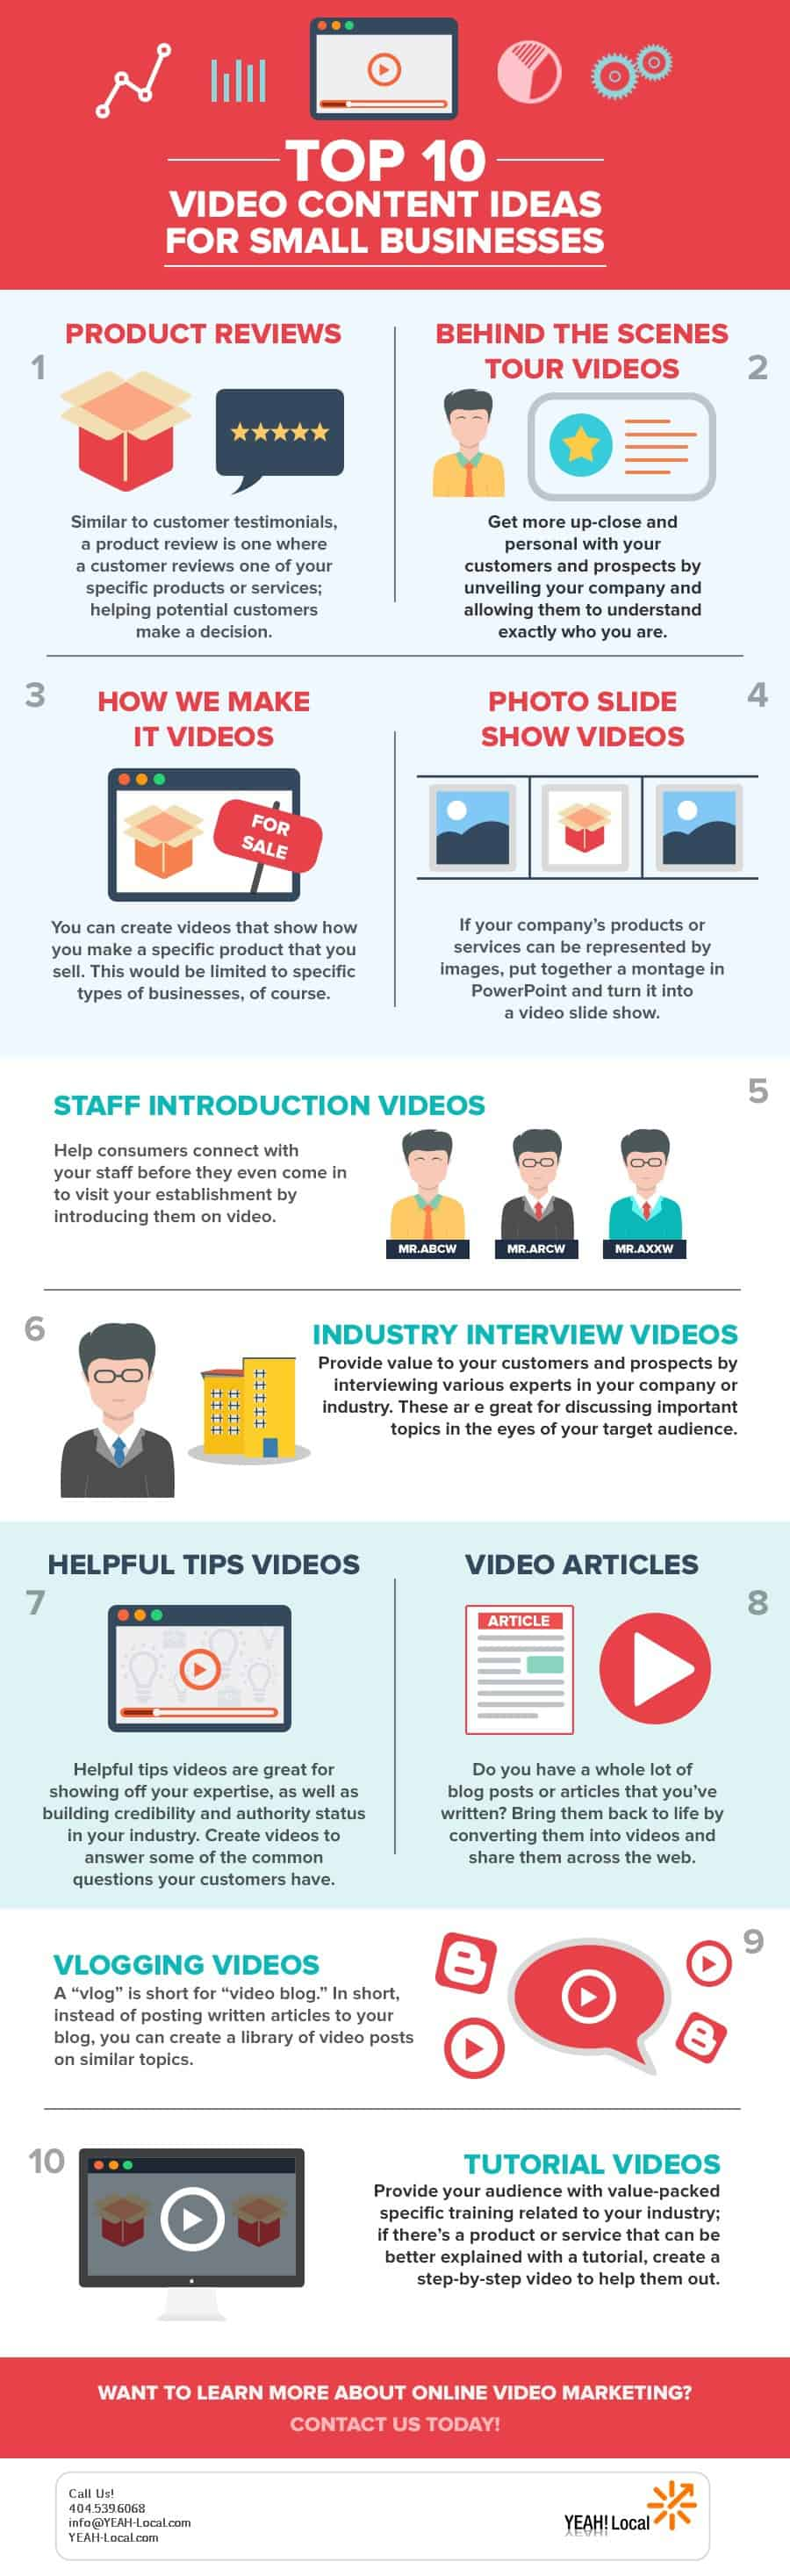 Top 10 Video Marketing Content Ideas for Small Businesses